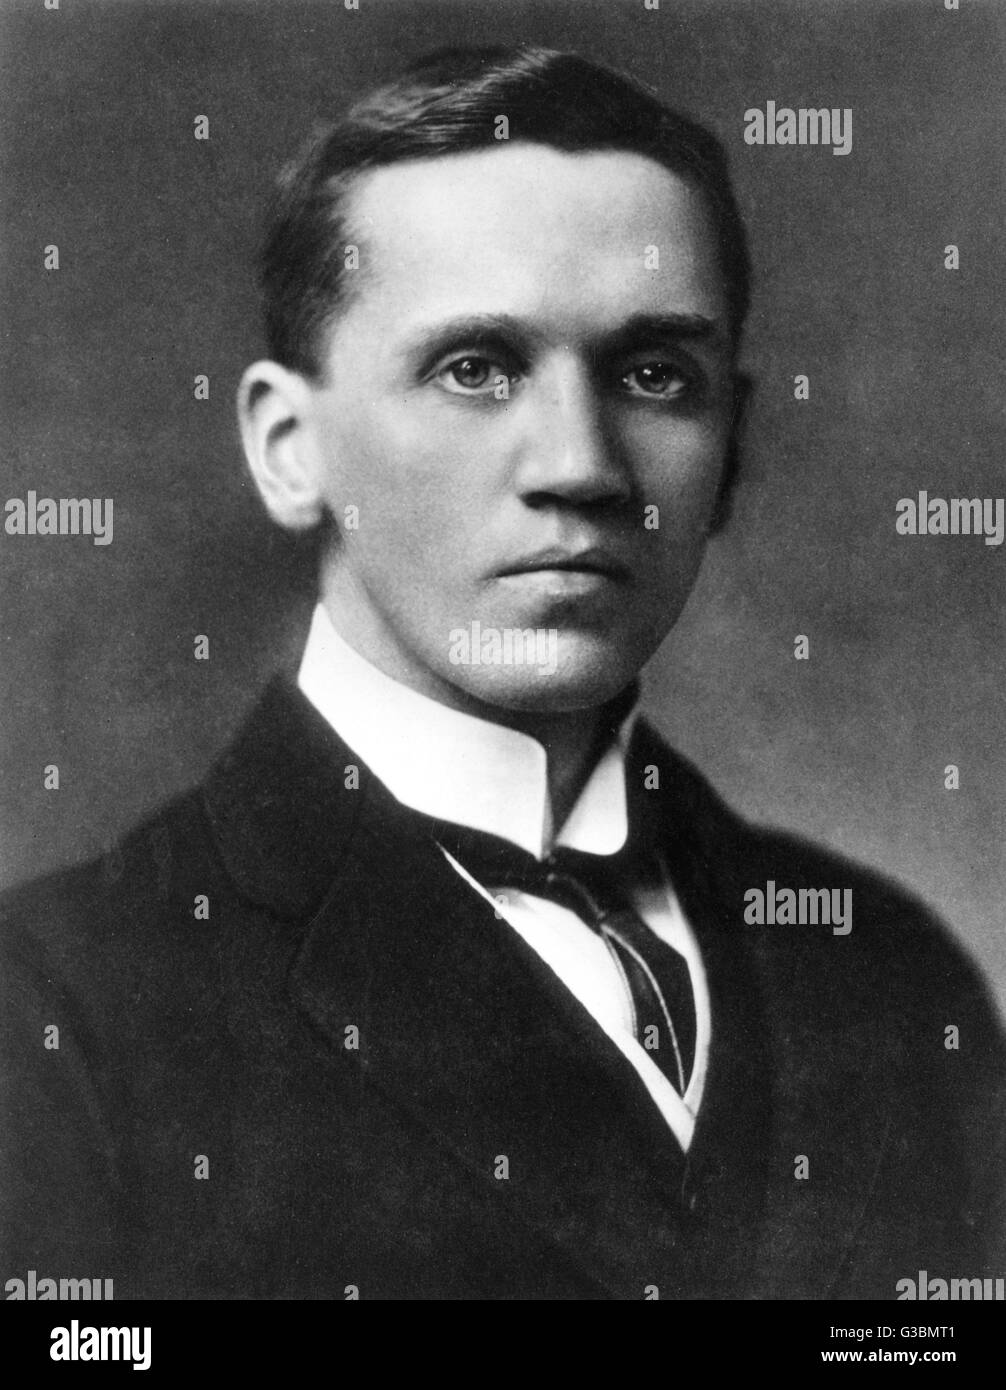 SIR ALEXANDER FLEMING - as a young man         Date: 1881 - 1955 - Stock Image